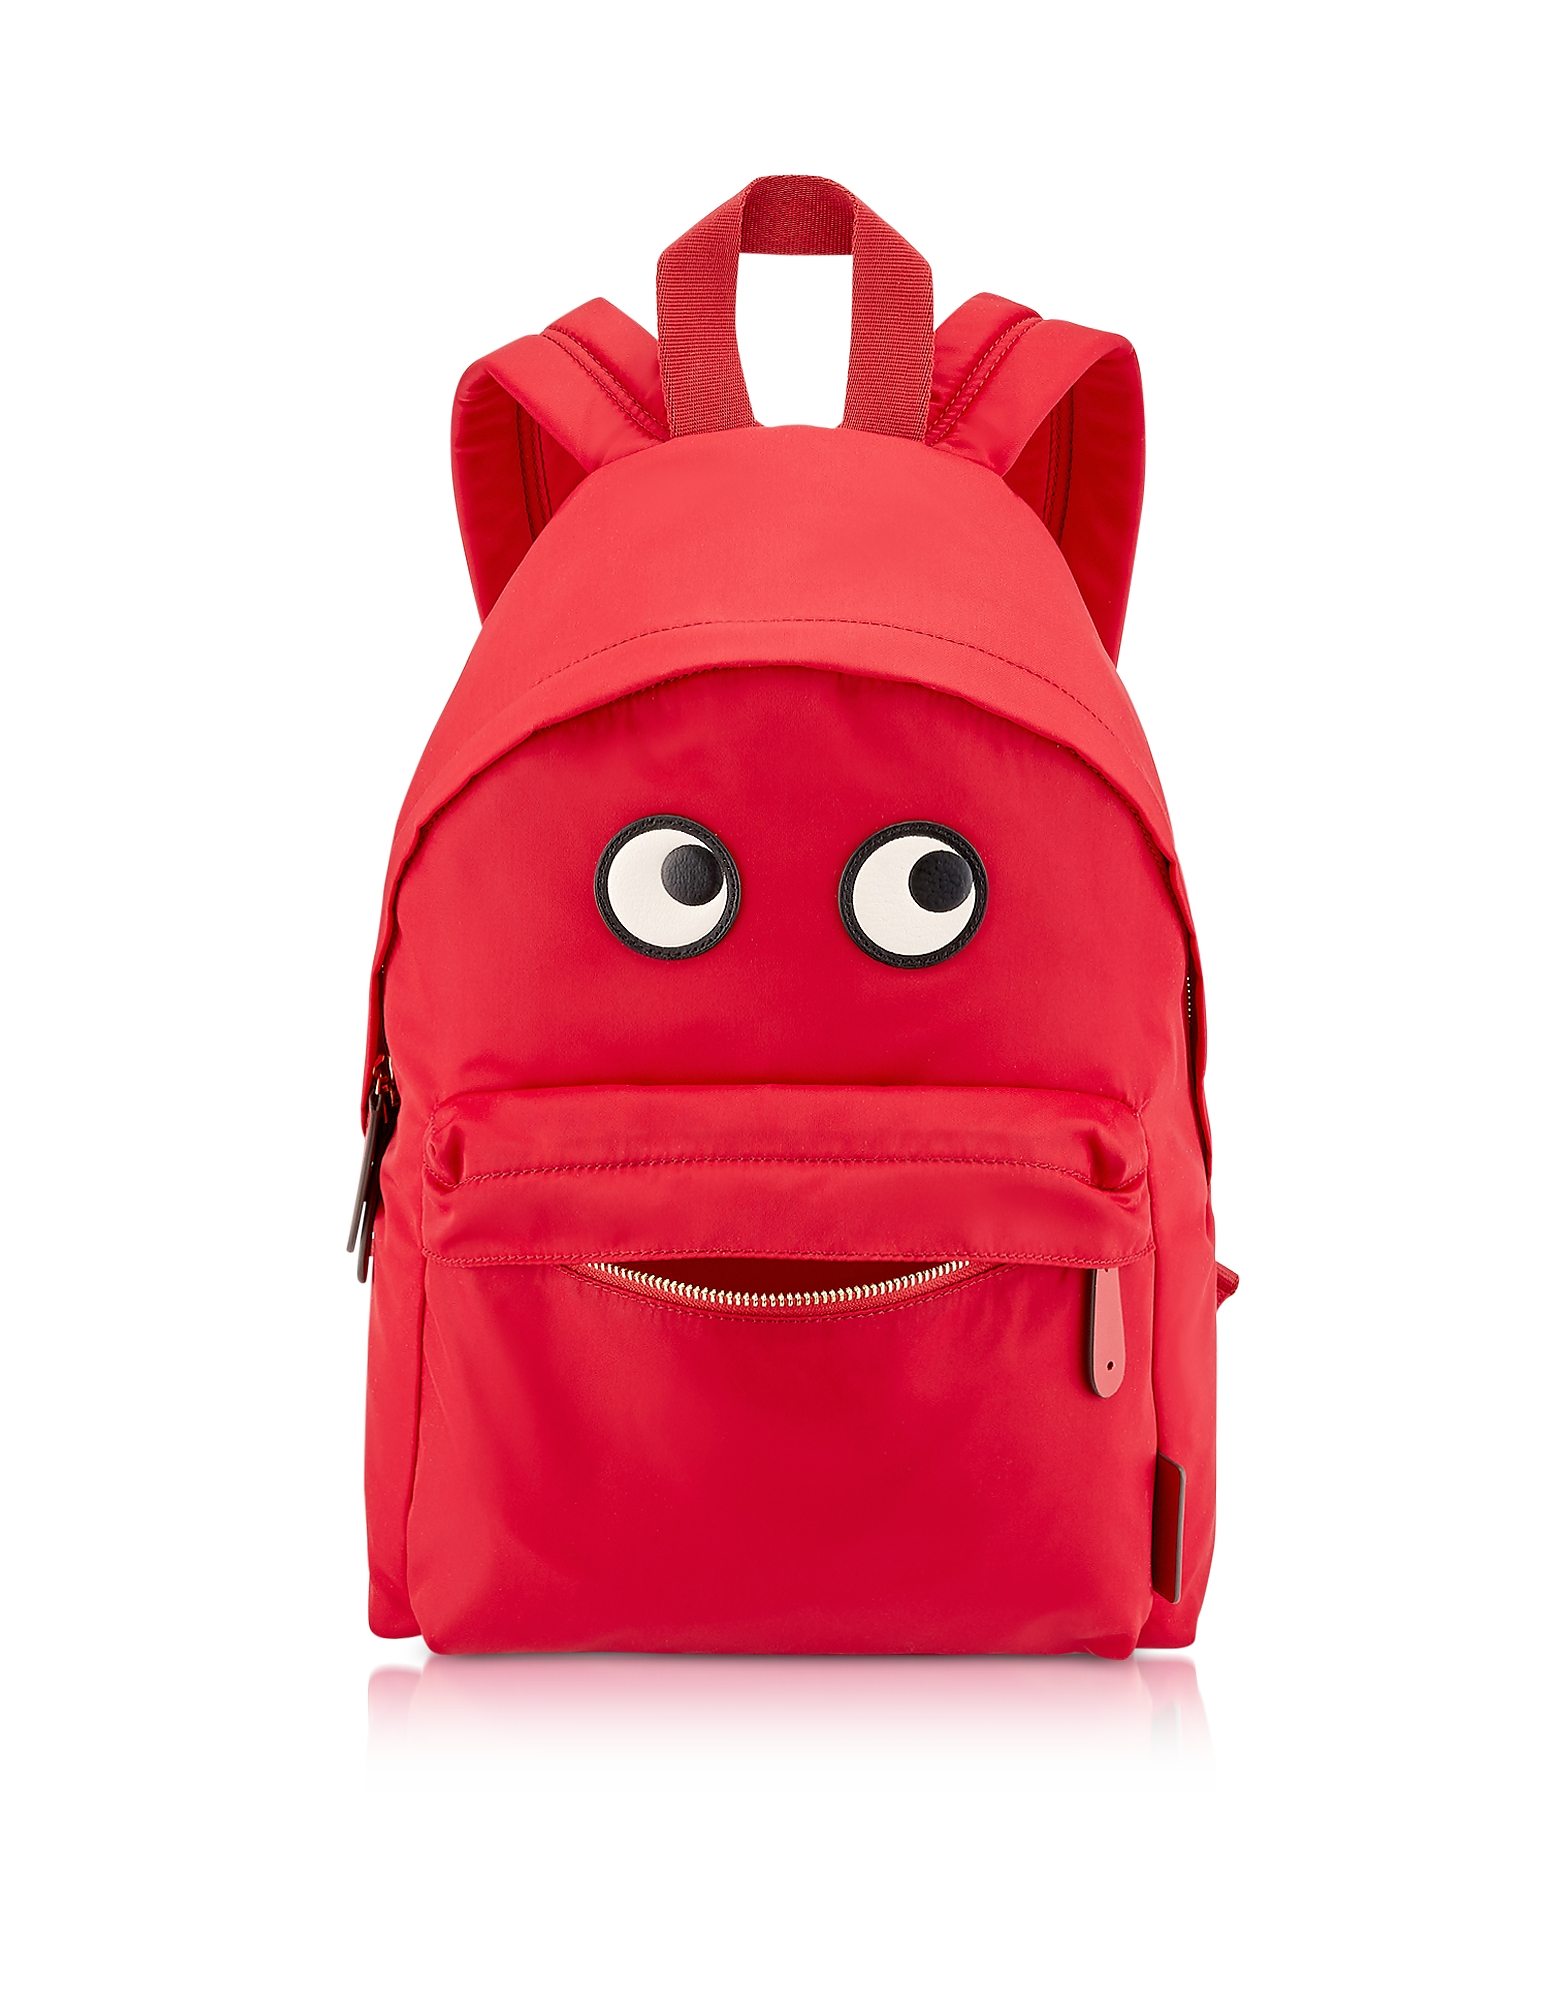 Anya Hindmarch Handbags, Nylon Eyes Backpack